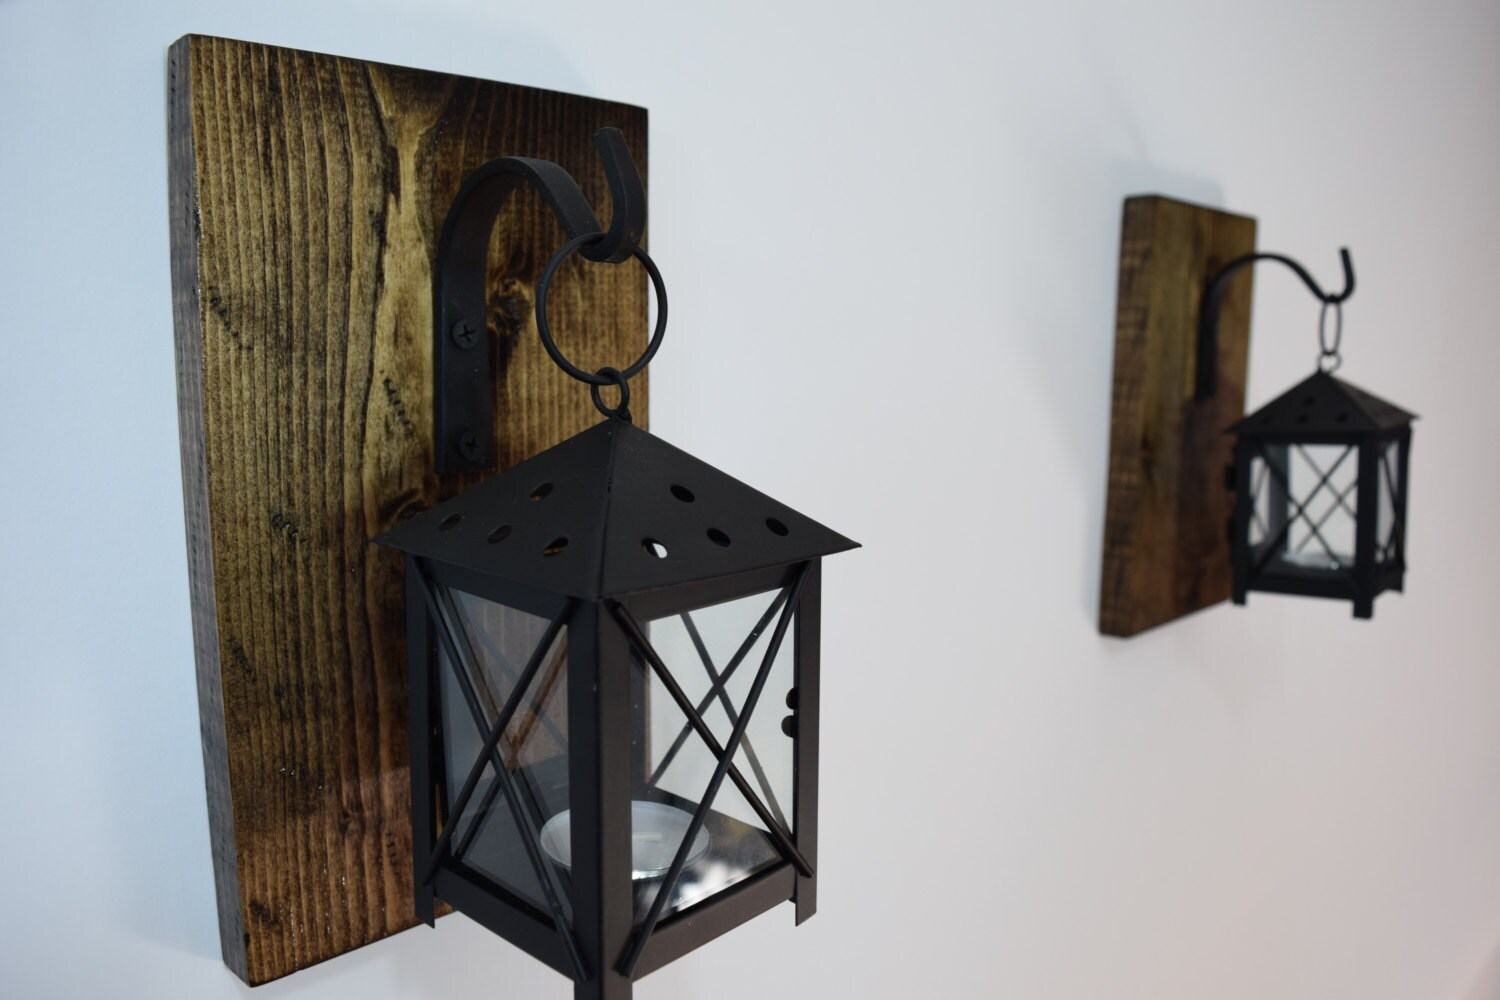 Famous Rustic Candle Lantern Sconces Wall Decor Wall Sconce NW71